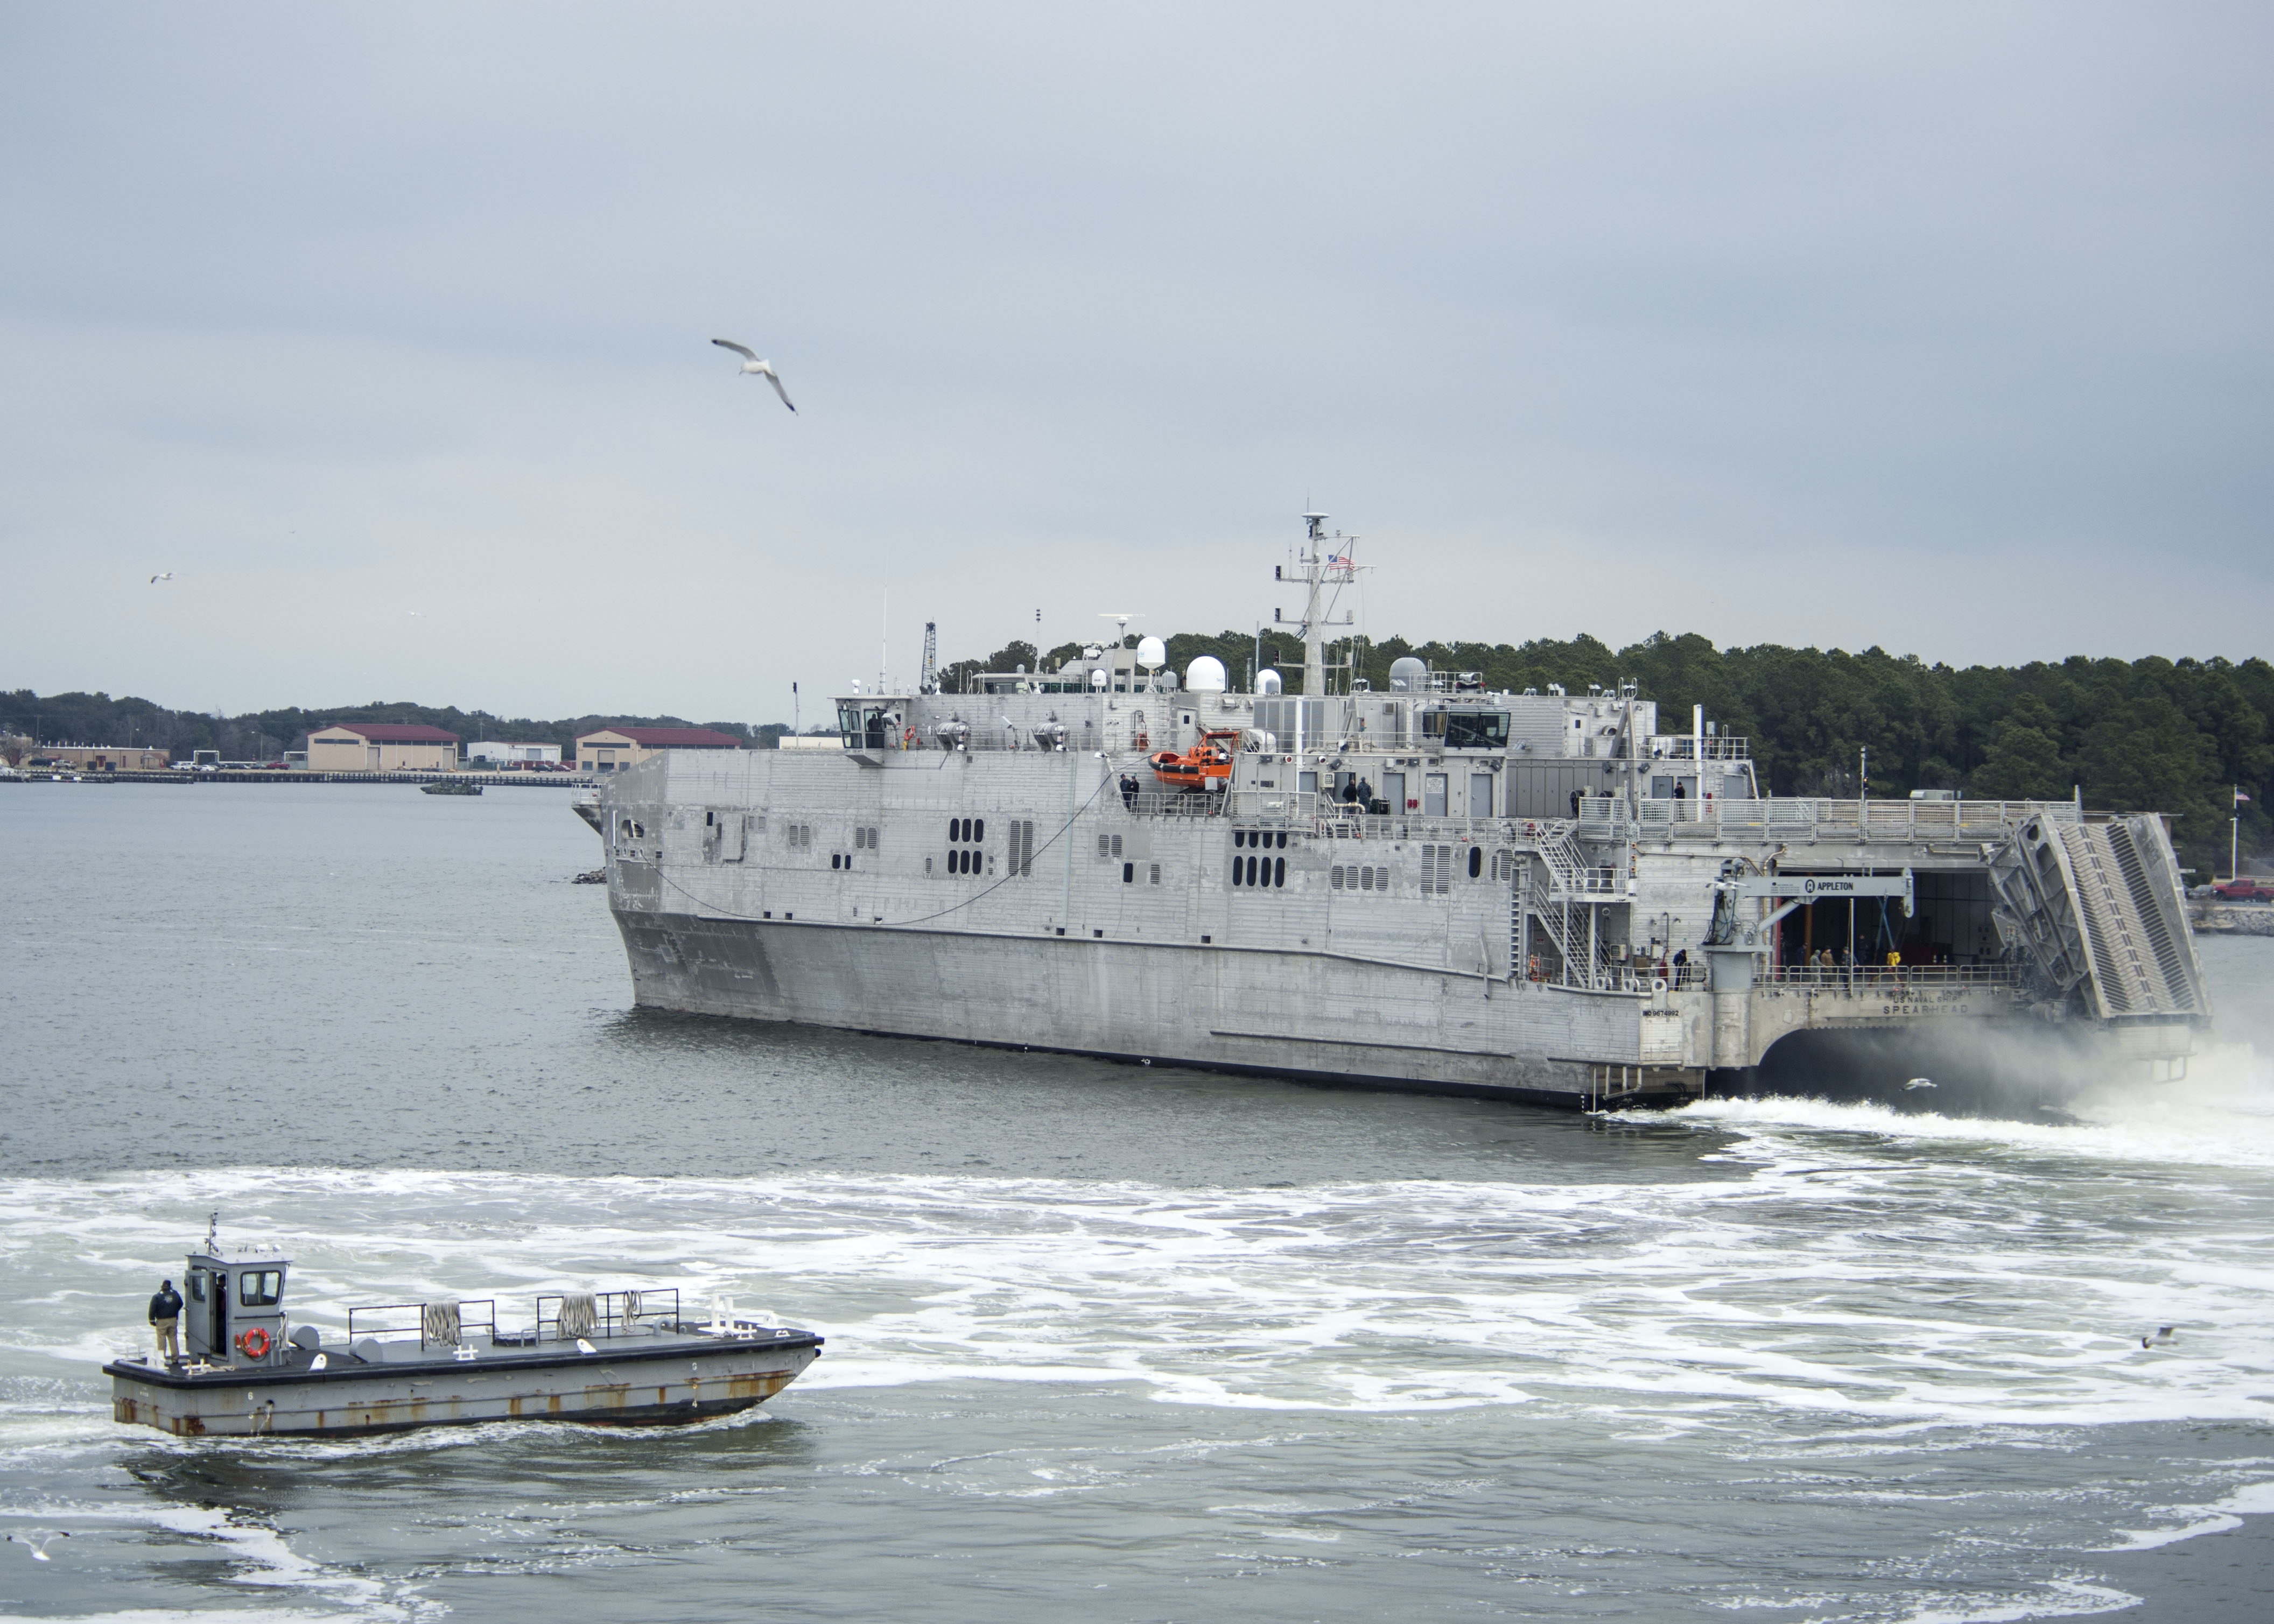 USNS SPEARHEAD JHSV-1 Auslaufen Little Creek, VA am 16.01.2014 Bild: U.S. Navy